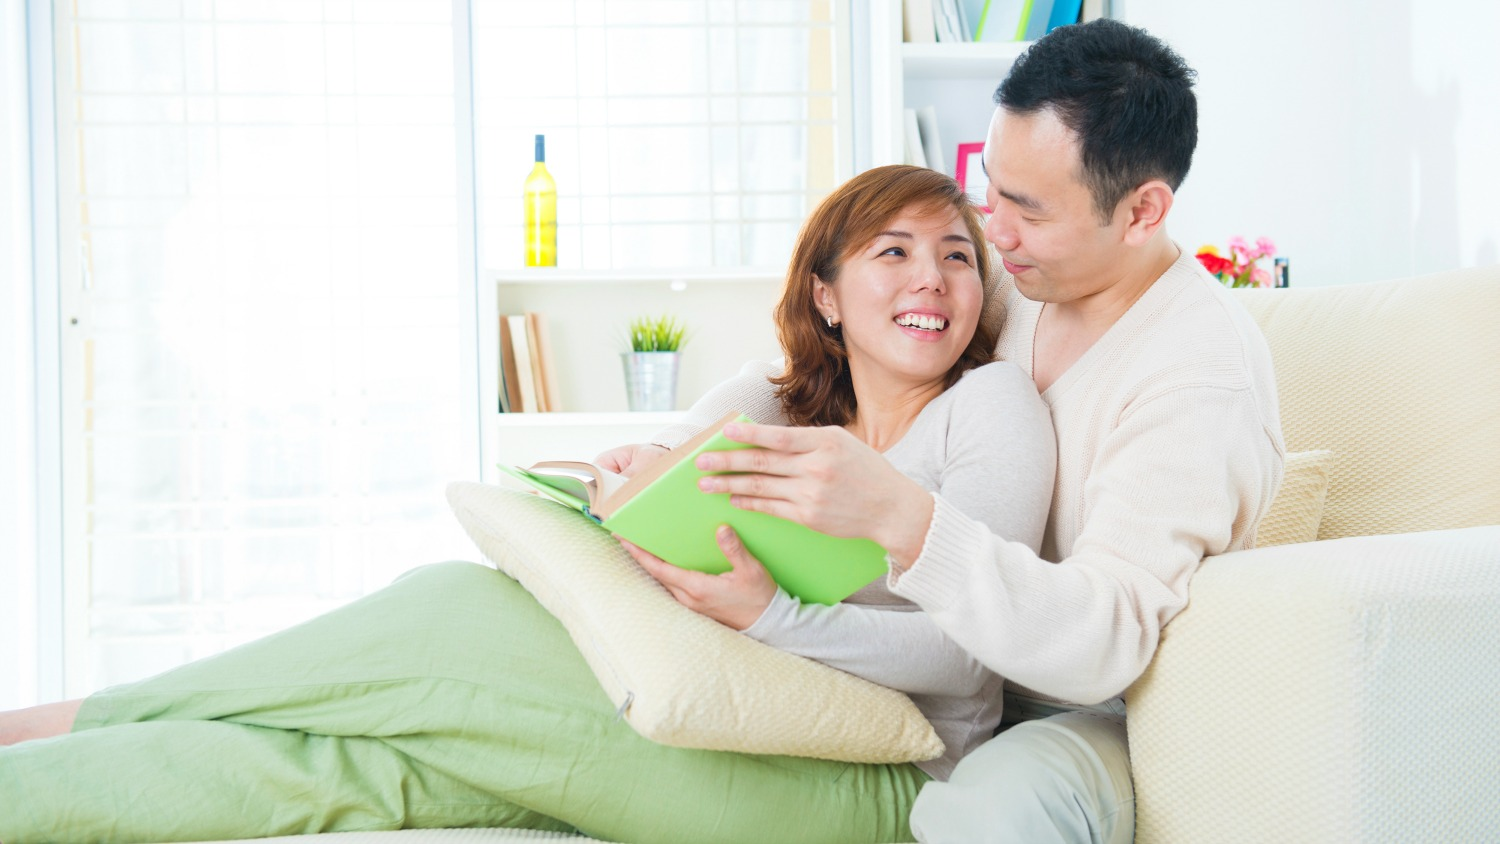 Questions That New Dads Want to Ask Their Partner